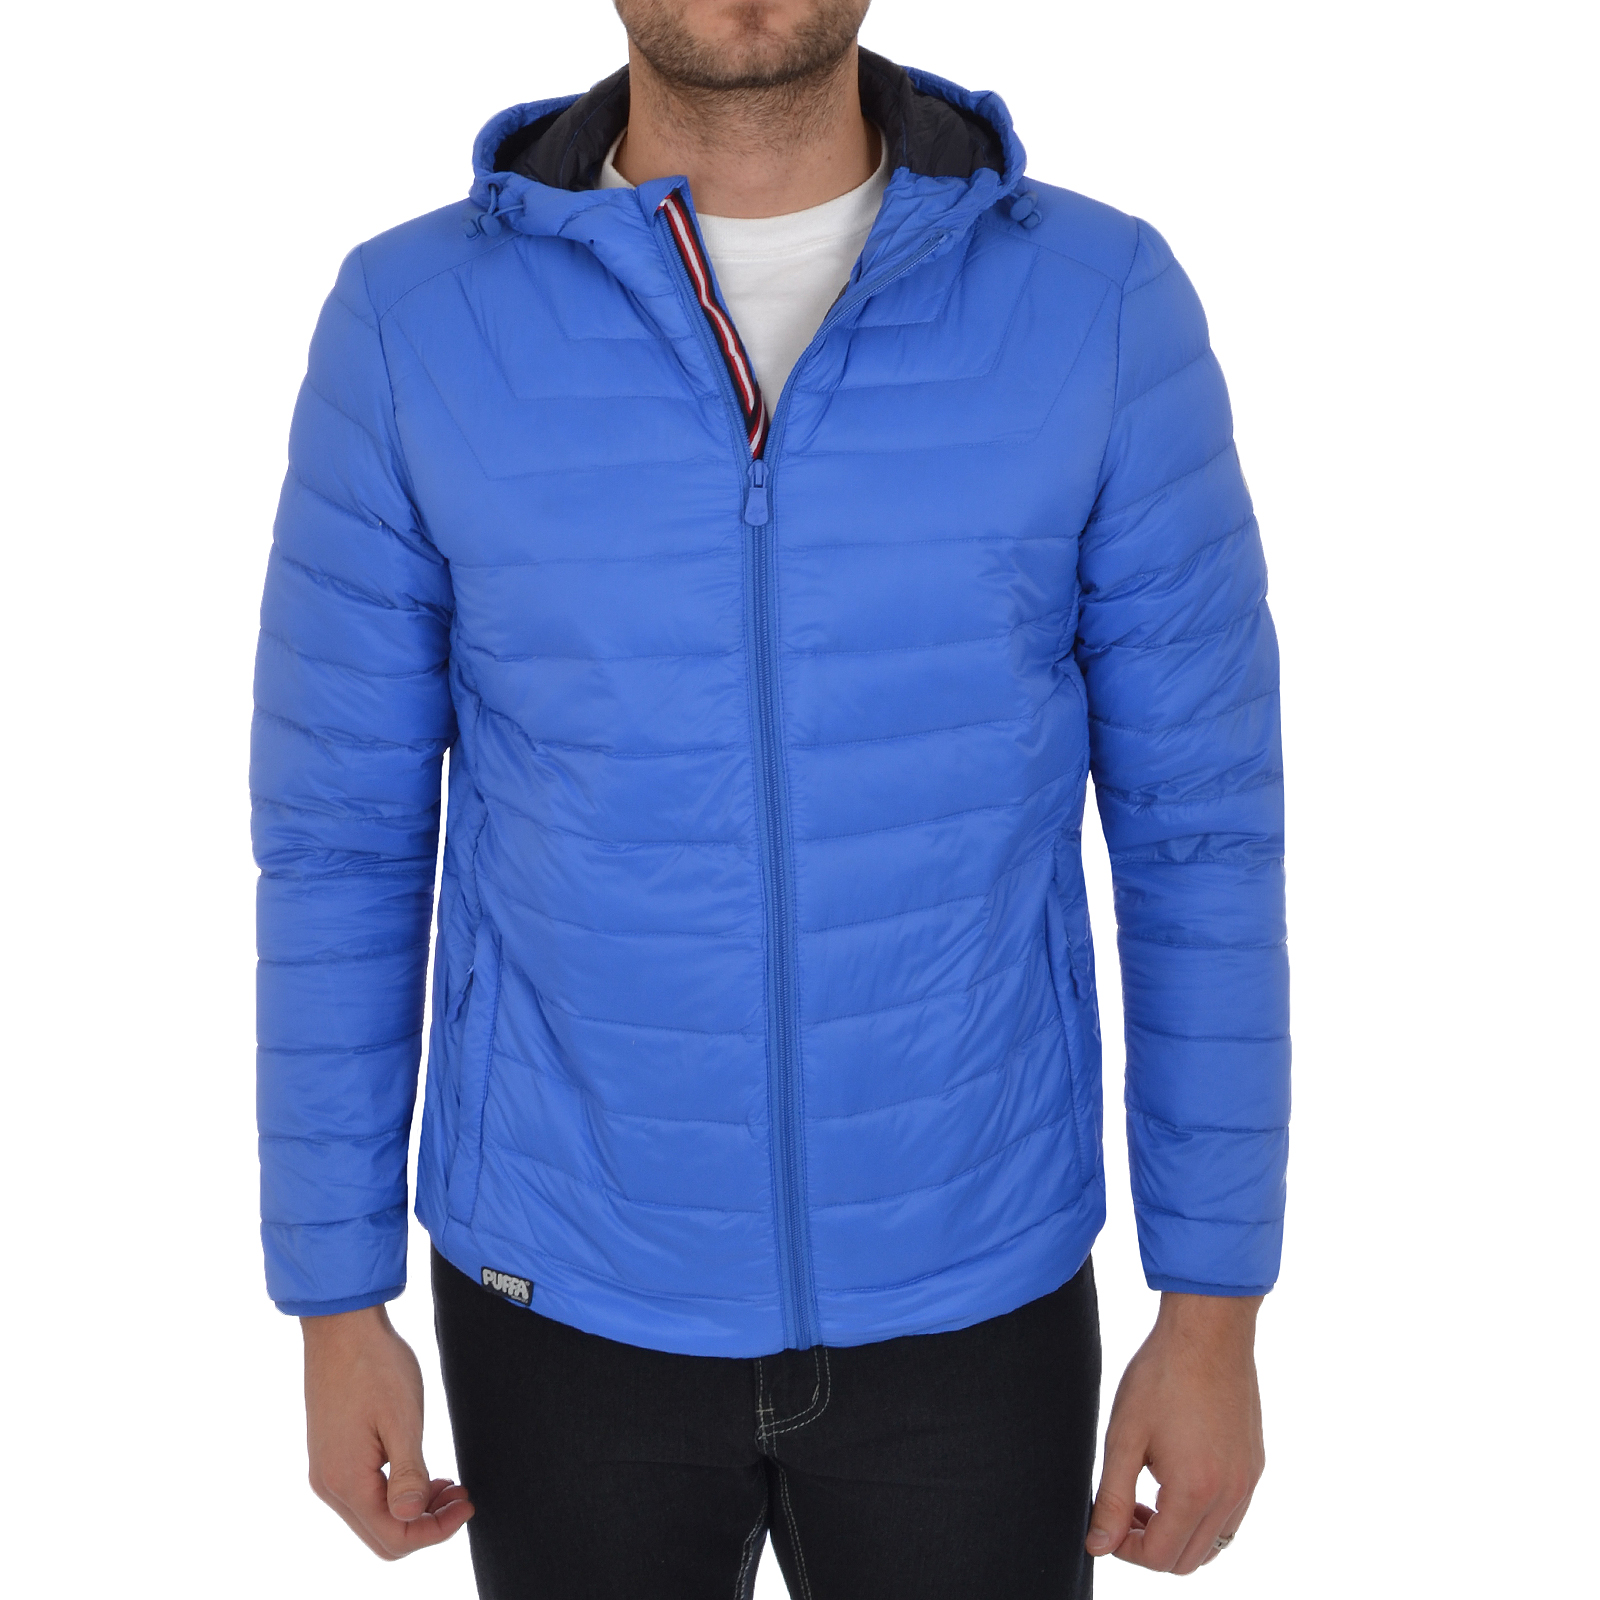 Shop for Insulated Jackets at REI - FREE SHIPPING With $50 minimum purchase/10 (22K reviews),+ followers on Twitter.